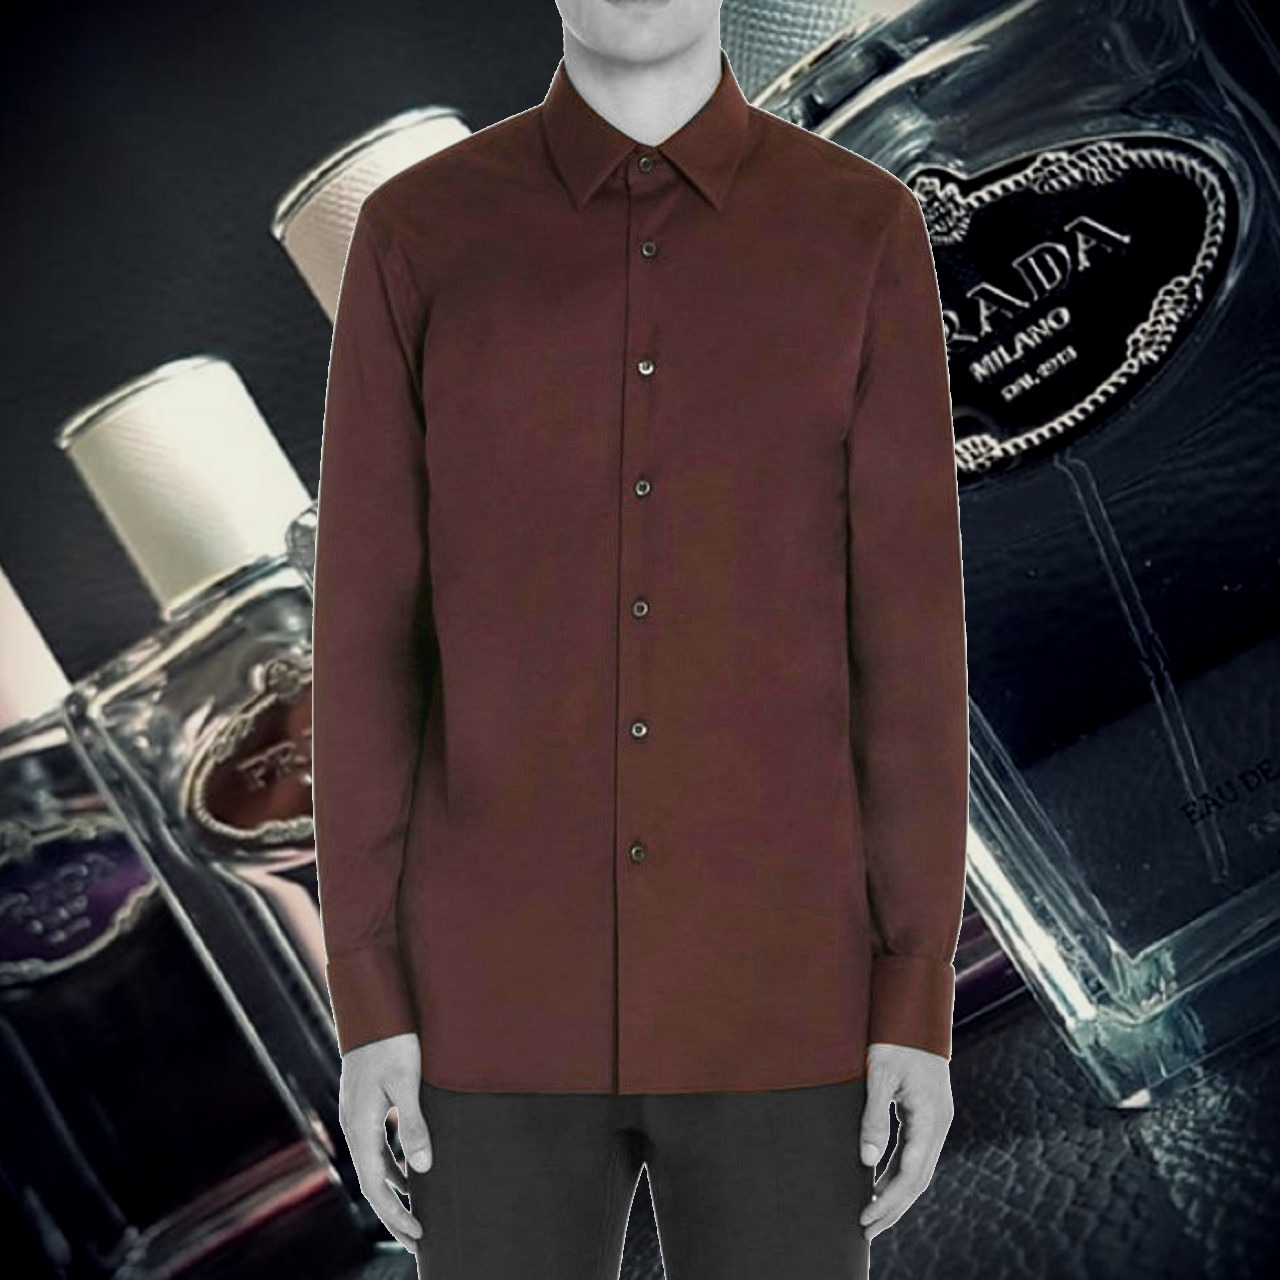 *PRADA*Cotton-Blend Poplin Shirt WINE ポップリン シャツ